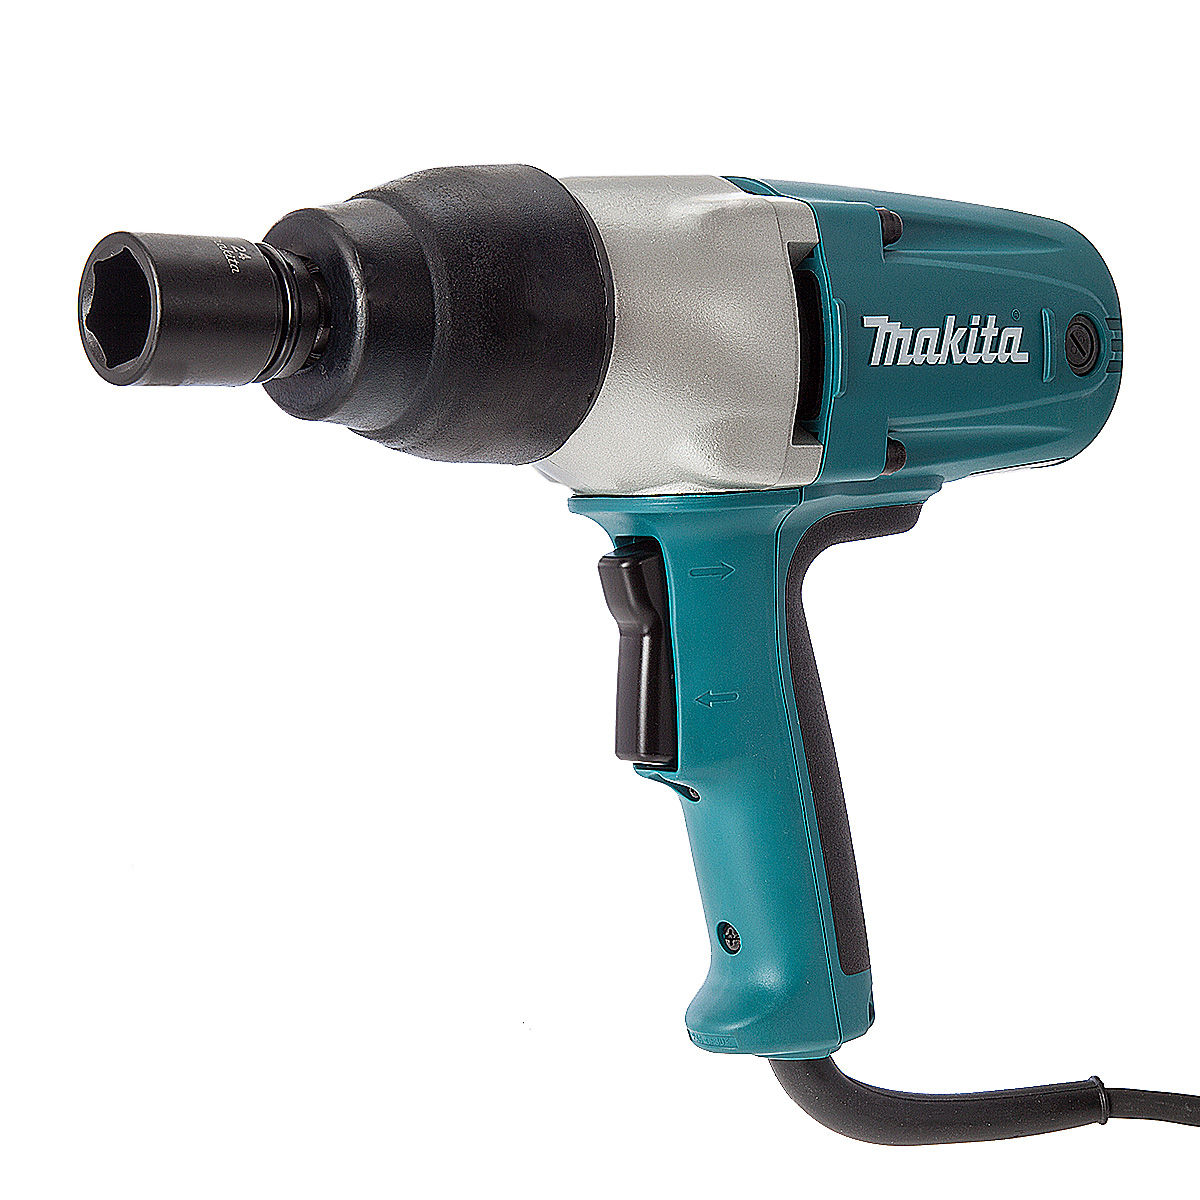 Makita 6 amp 5/8 in. Corded hammer drill-hp1640 the home depot.